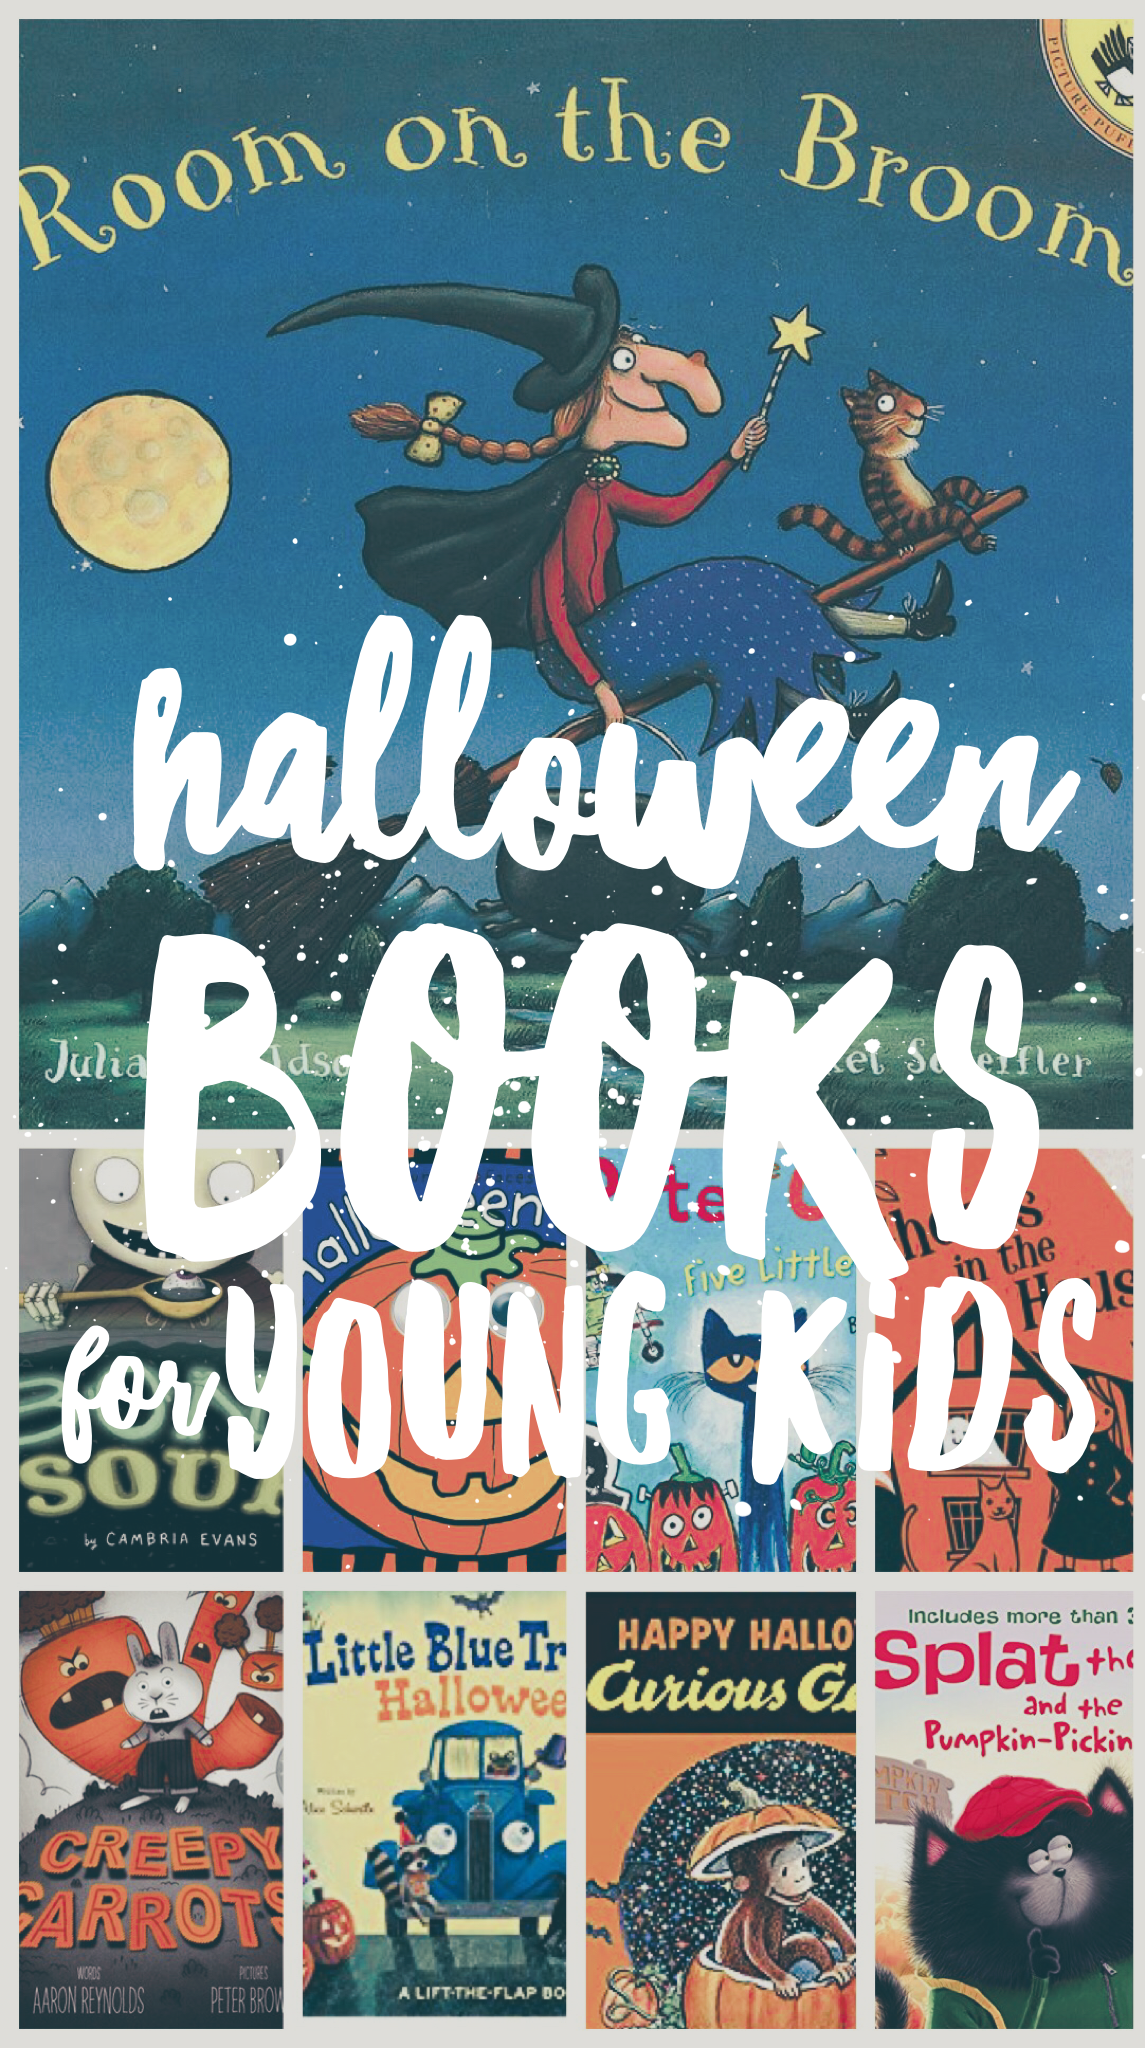 Halloween Books for Young Kids - Children's Books and Reading List for Halloween Fun